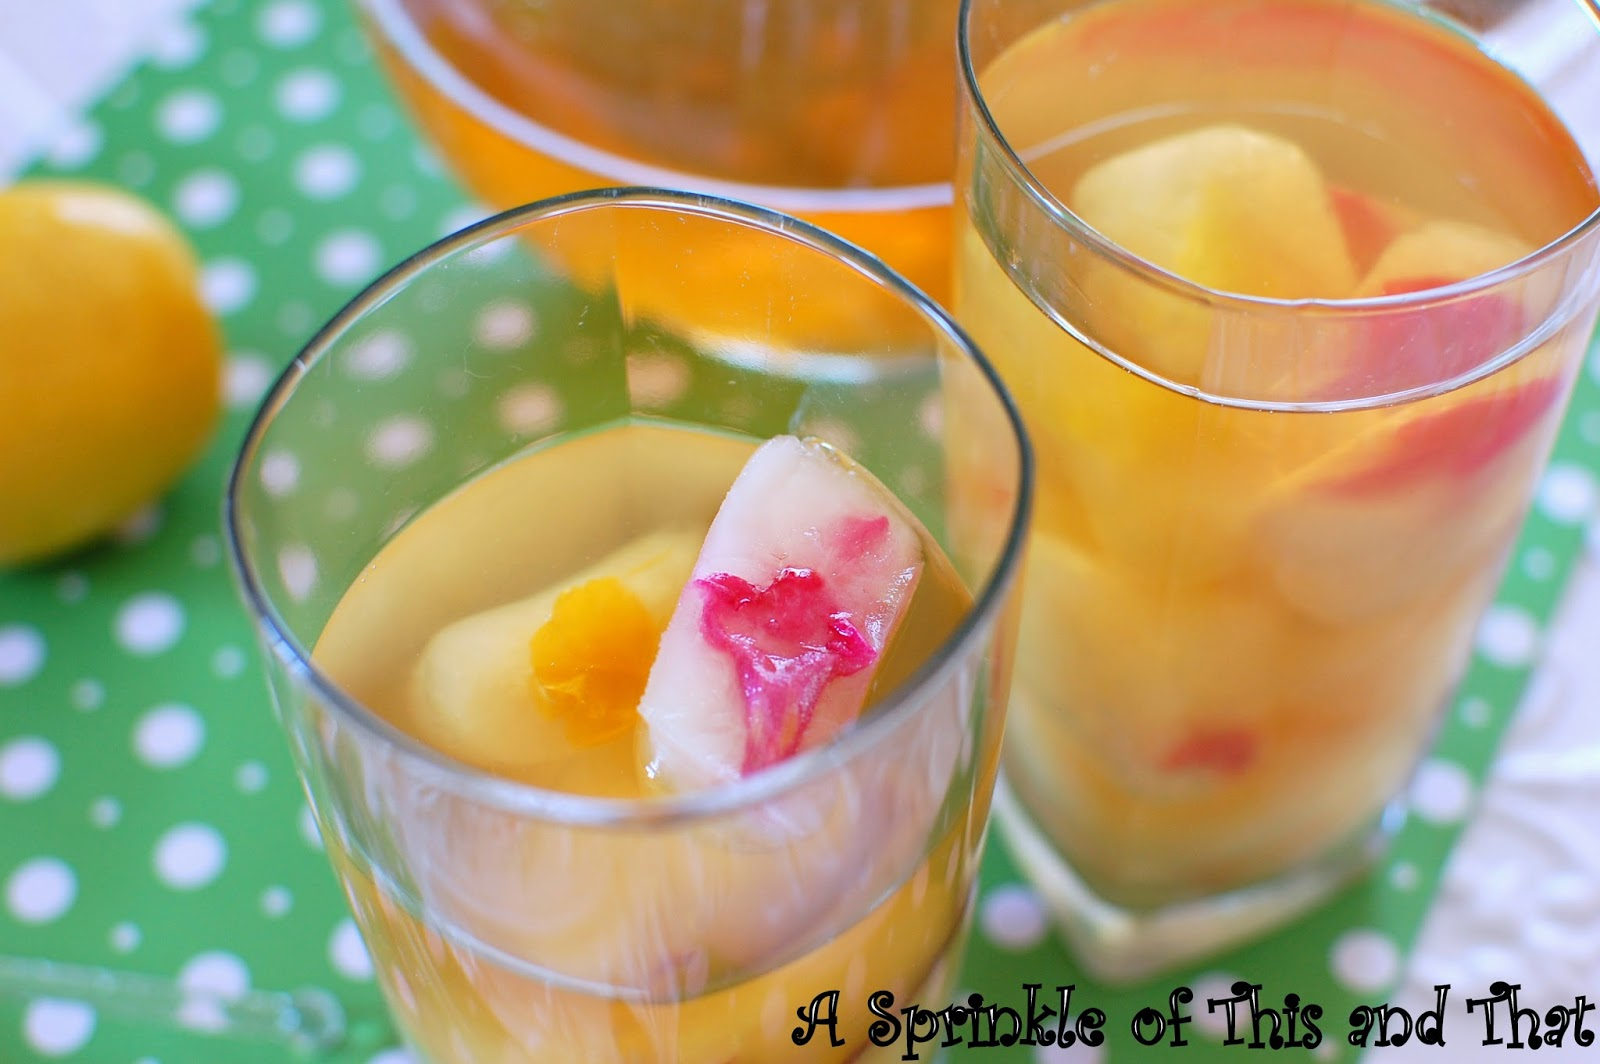 ... Sprinkle of This and That: Lemon Ginger Iced Tea with Flower Ice Cubes